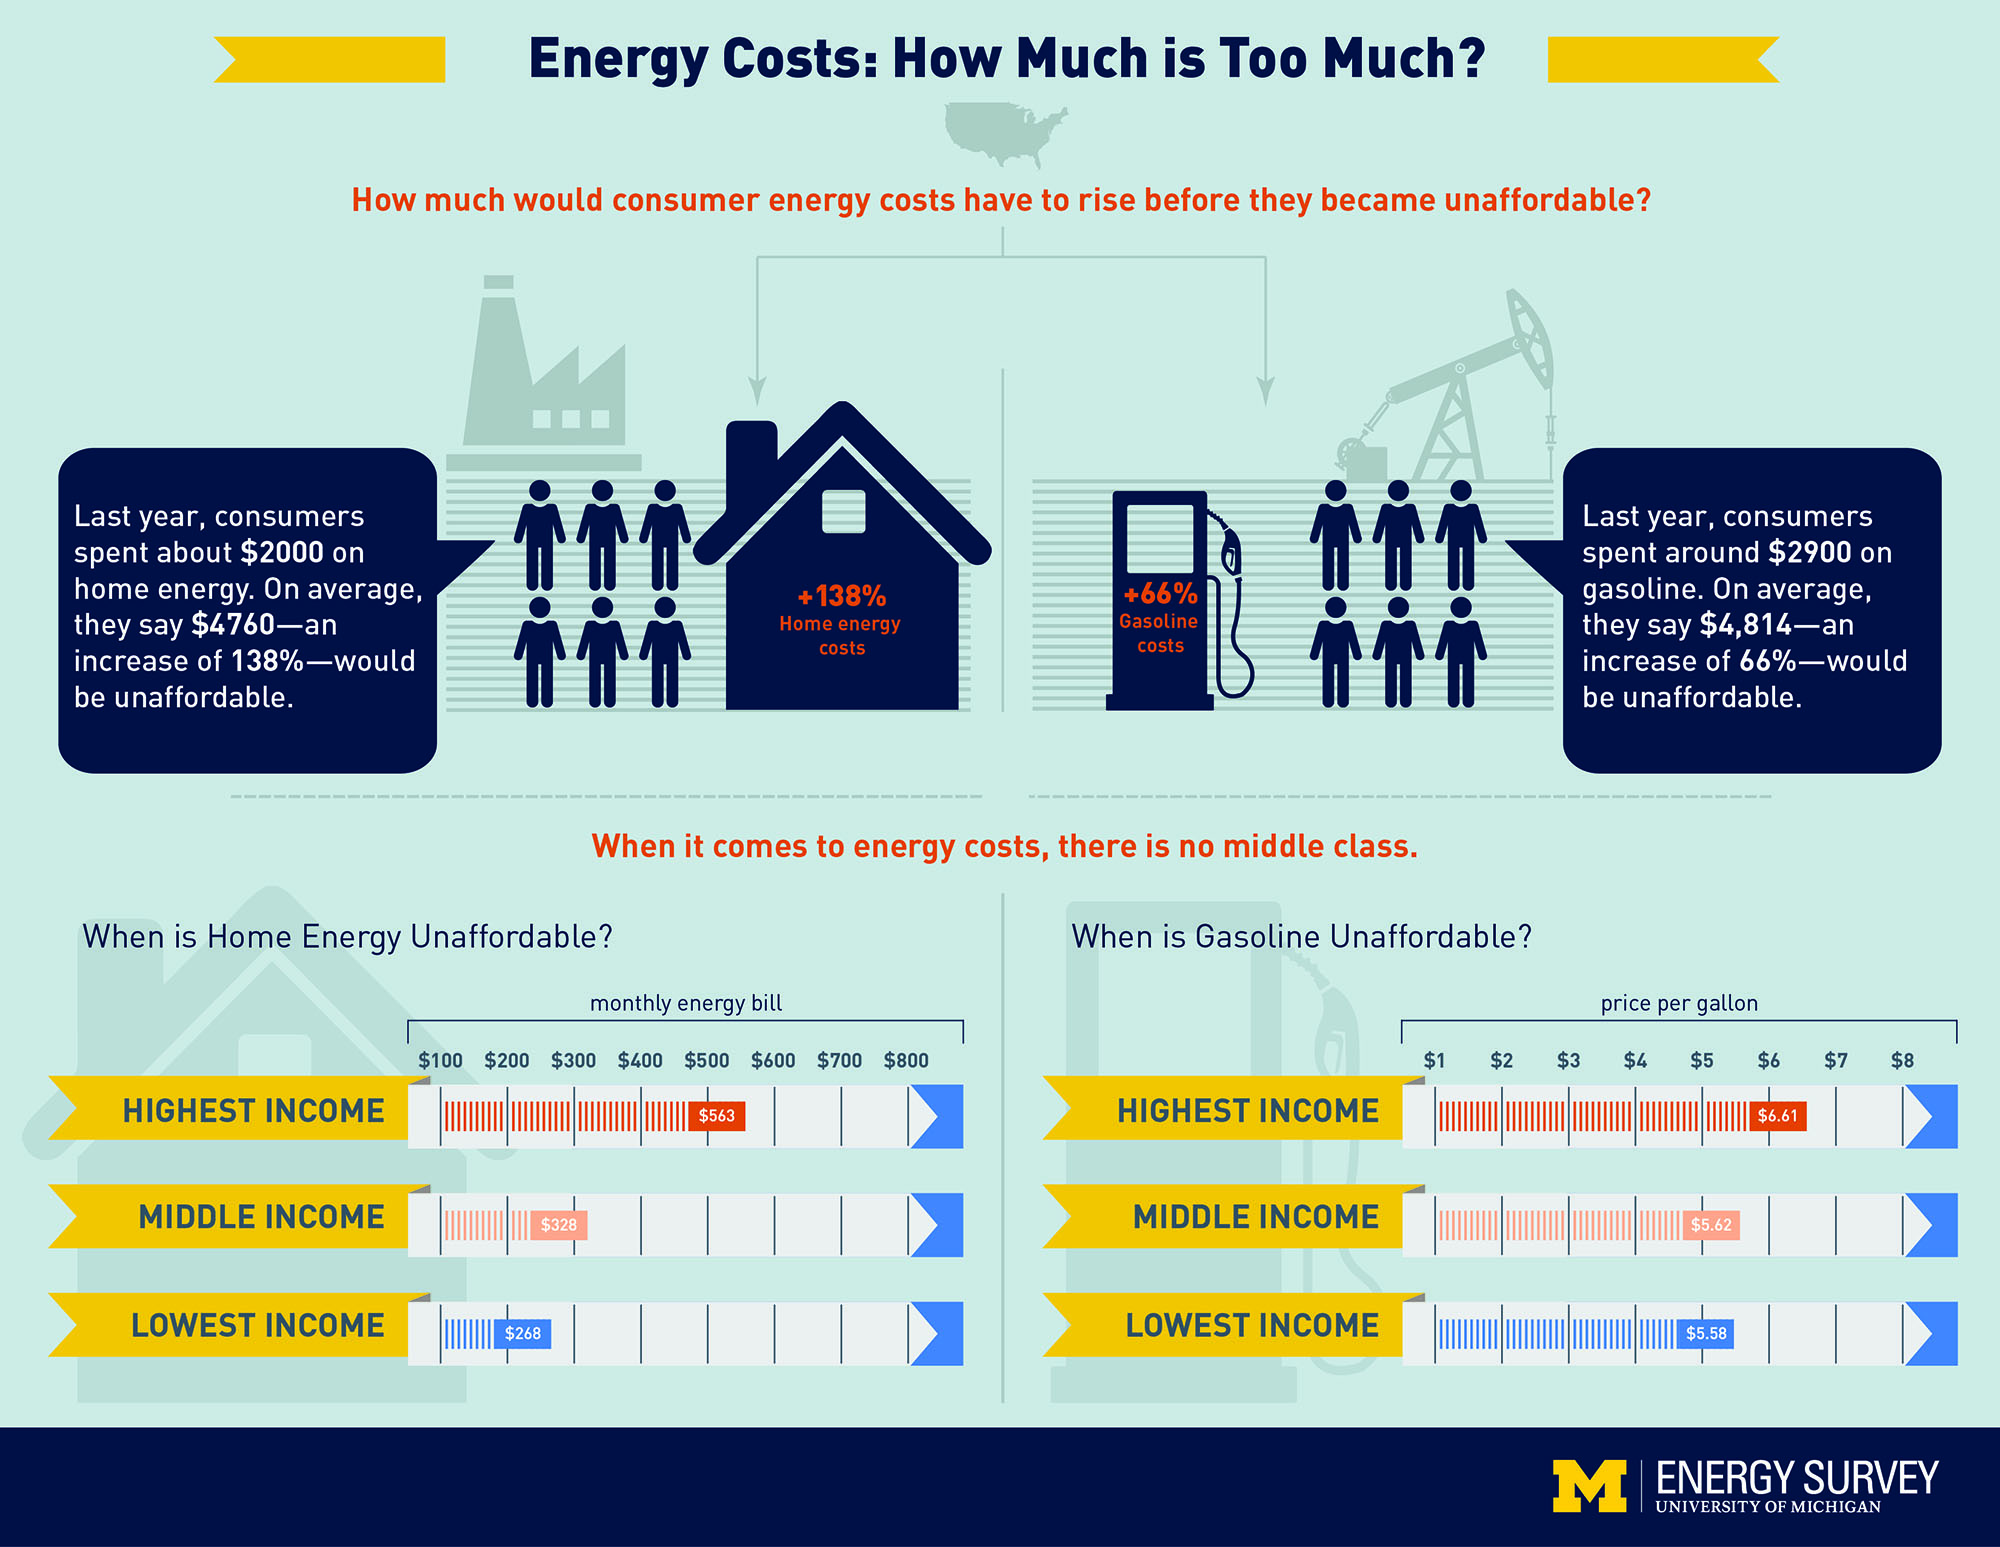 Energy costs: How much is too much? Infographic summarizing study findings